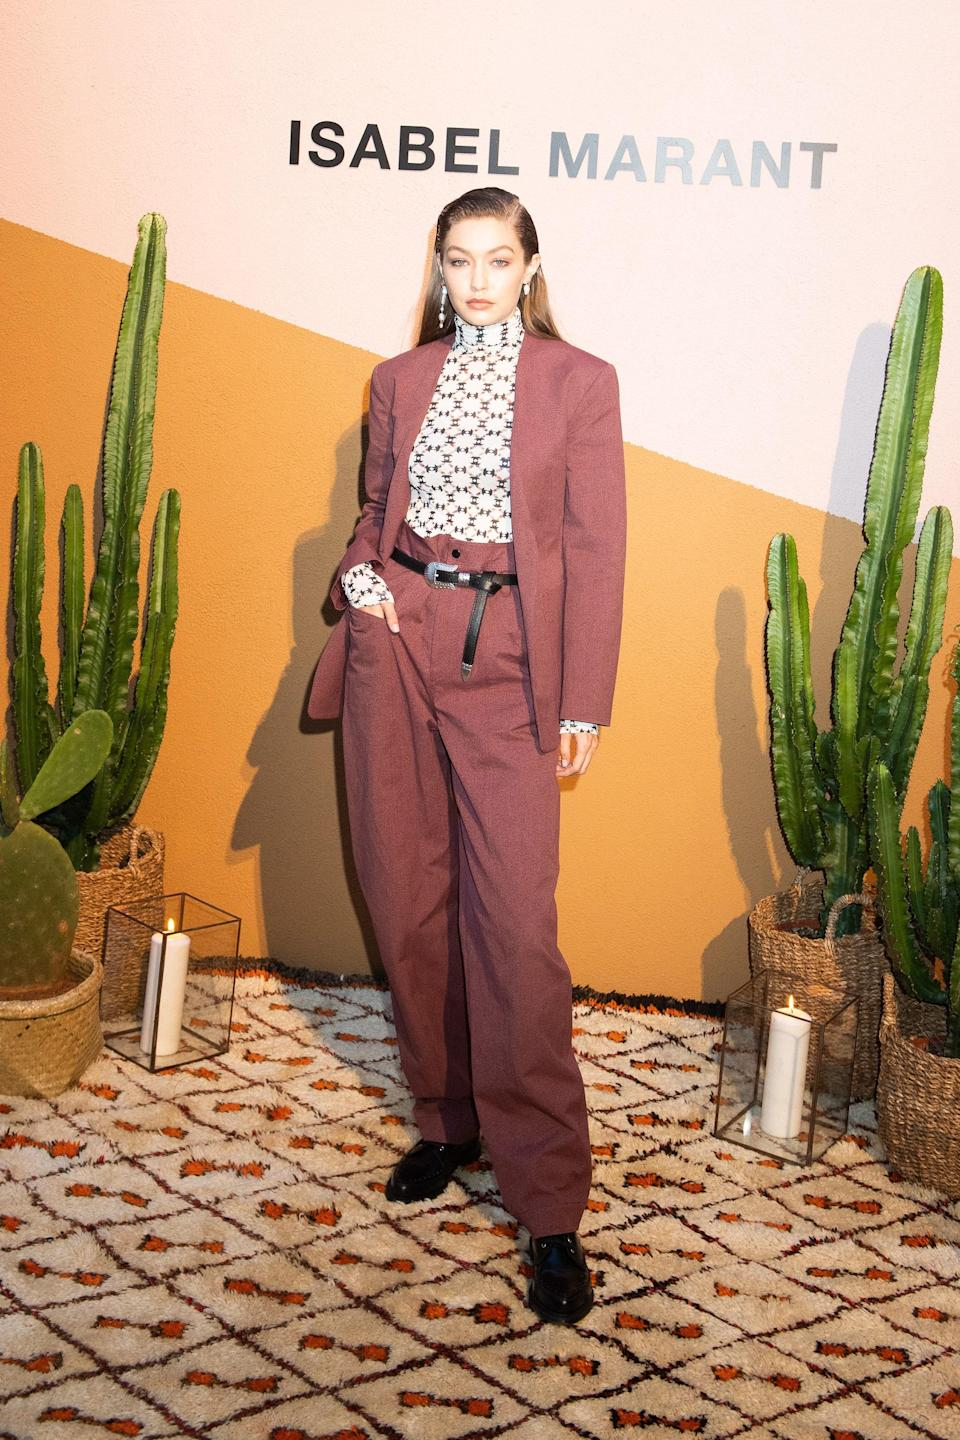 After walking the Versace Men's runway, Gigi changed into a burgundy suit with a patterned turtleneck to attend the designer Isabel Marant's afterparty. She paired her slicked-back side part with asymmetrical earrings — boss moves if we've ever seen 'em!